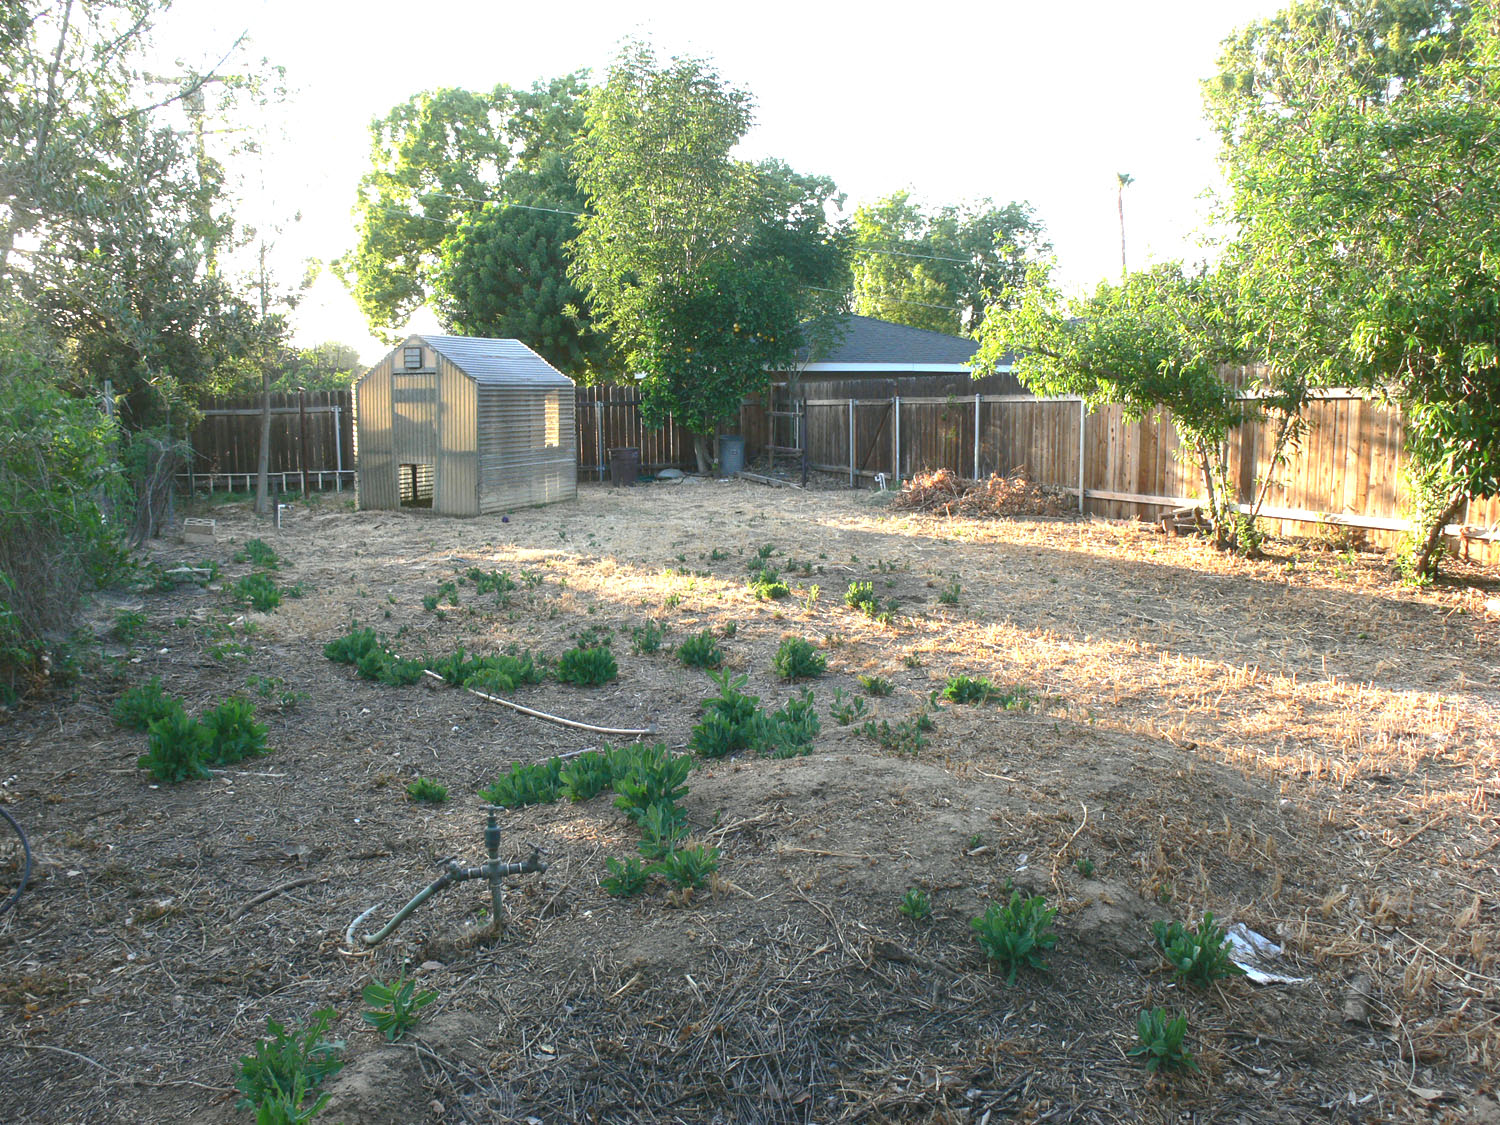 """The """"south 40""""! This is a whole separate fenced area that could be utilized for big boys' toys, pool, garden, orchard, etc. There is water plumbed back to this area also!"""